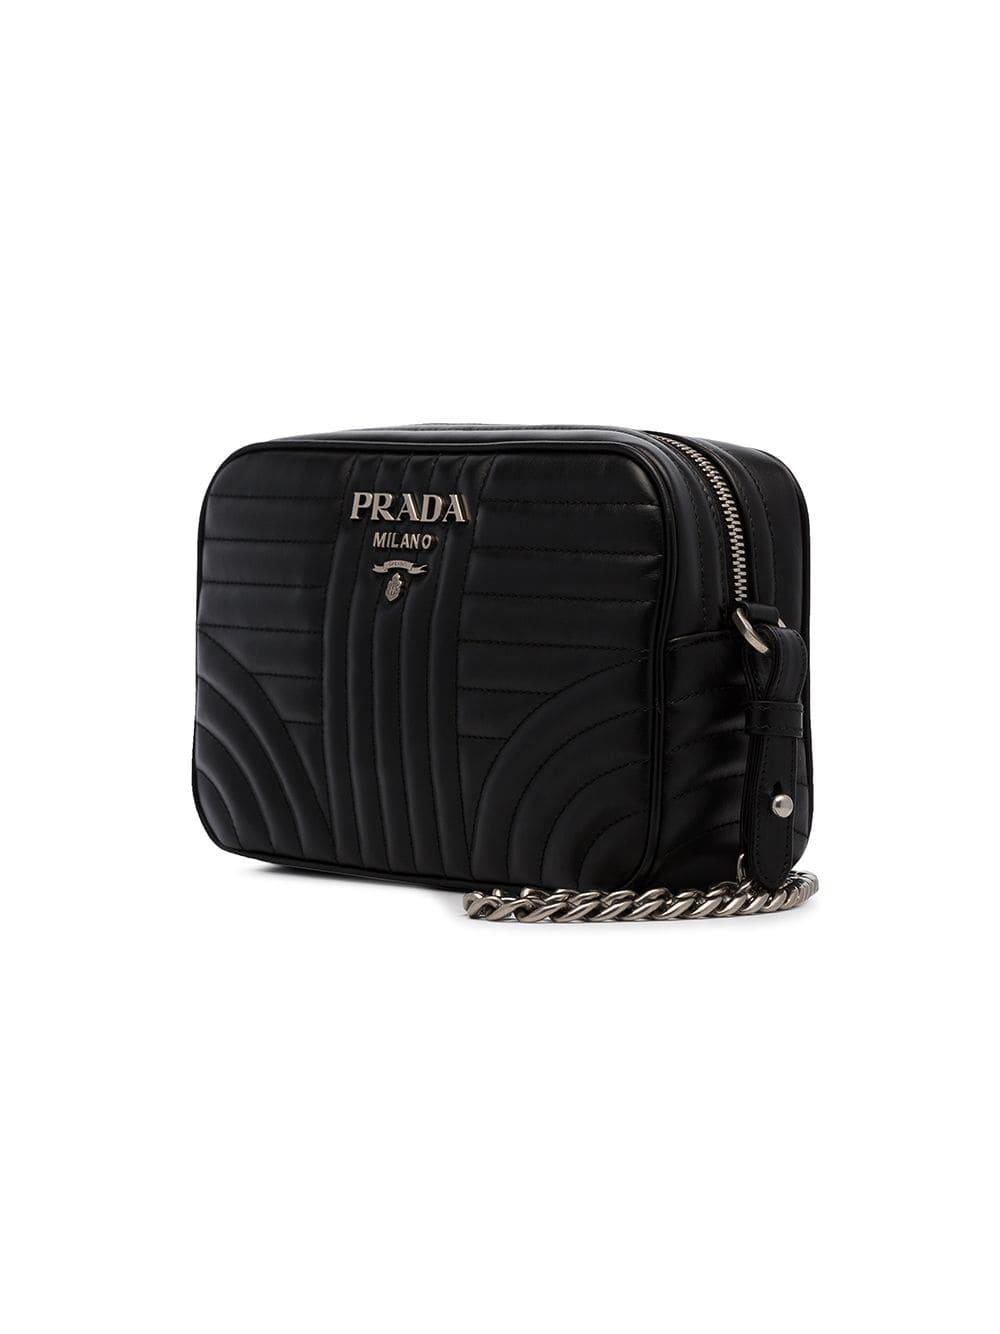 ccf212734b1 Lyst - Prada Black Diagram Quilted Leather Cross Body Bag in Black